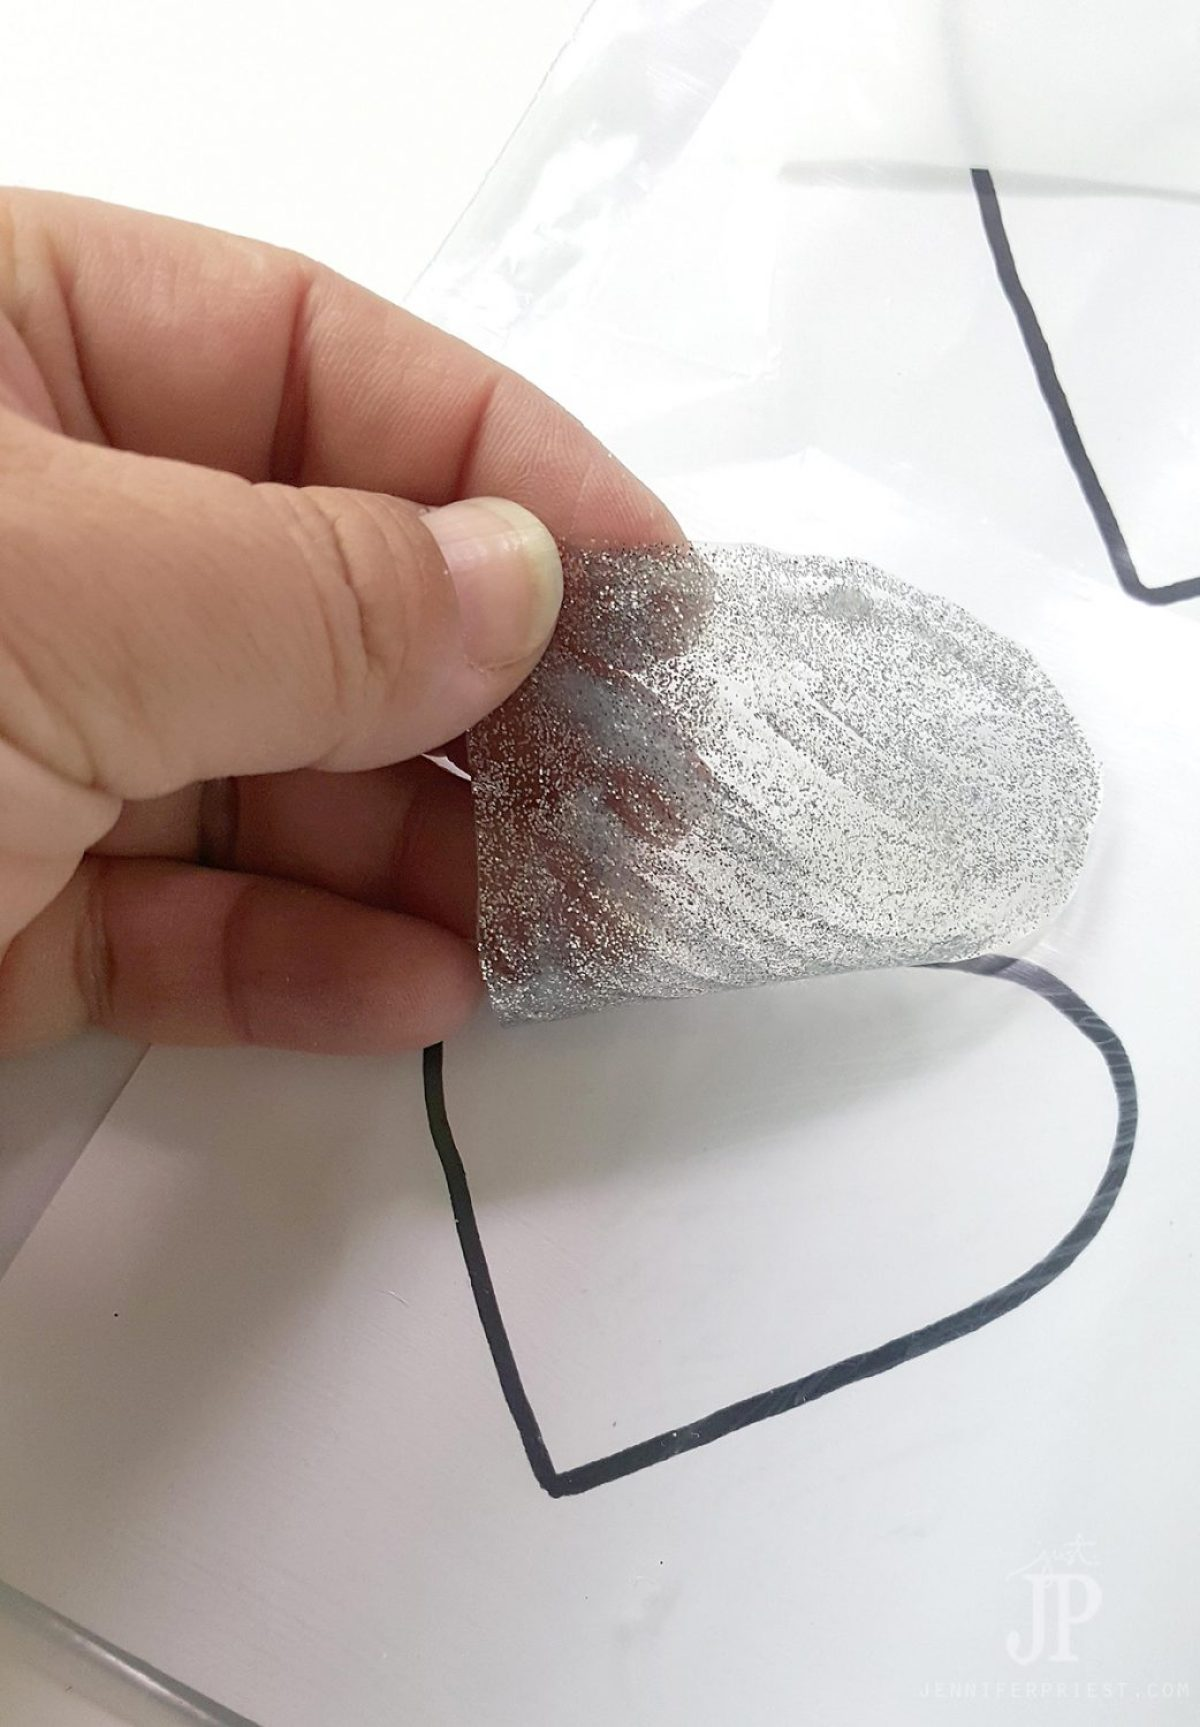 Smart tip: use freezer bags as a nonstick craft sheet to make DIY puffy paint window clings and doilies - this post shows how to make BOTH!